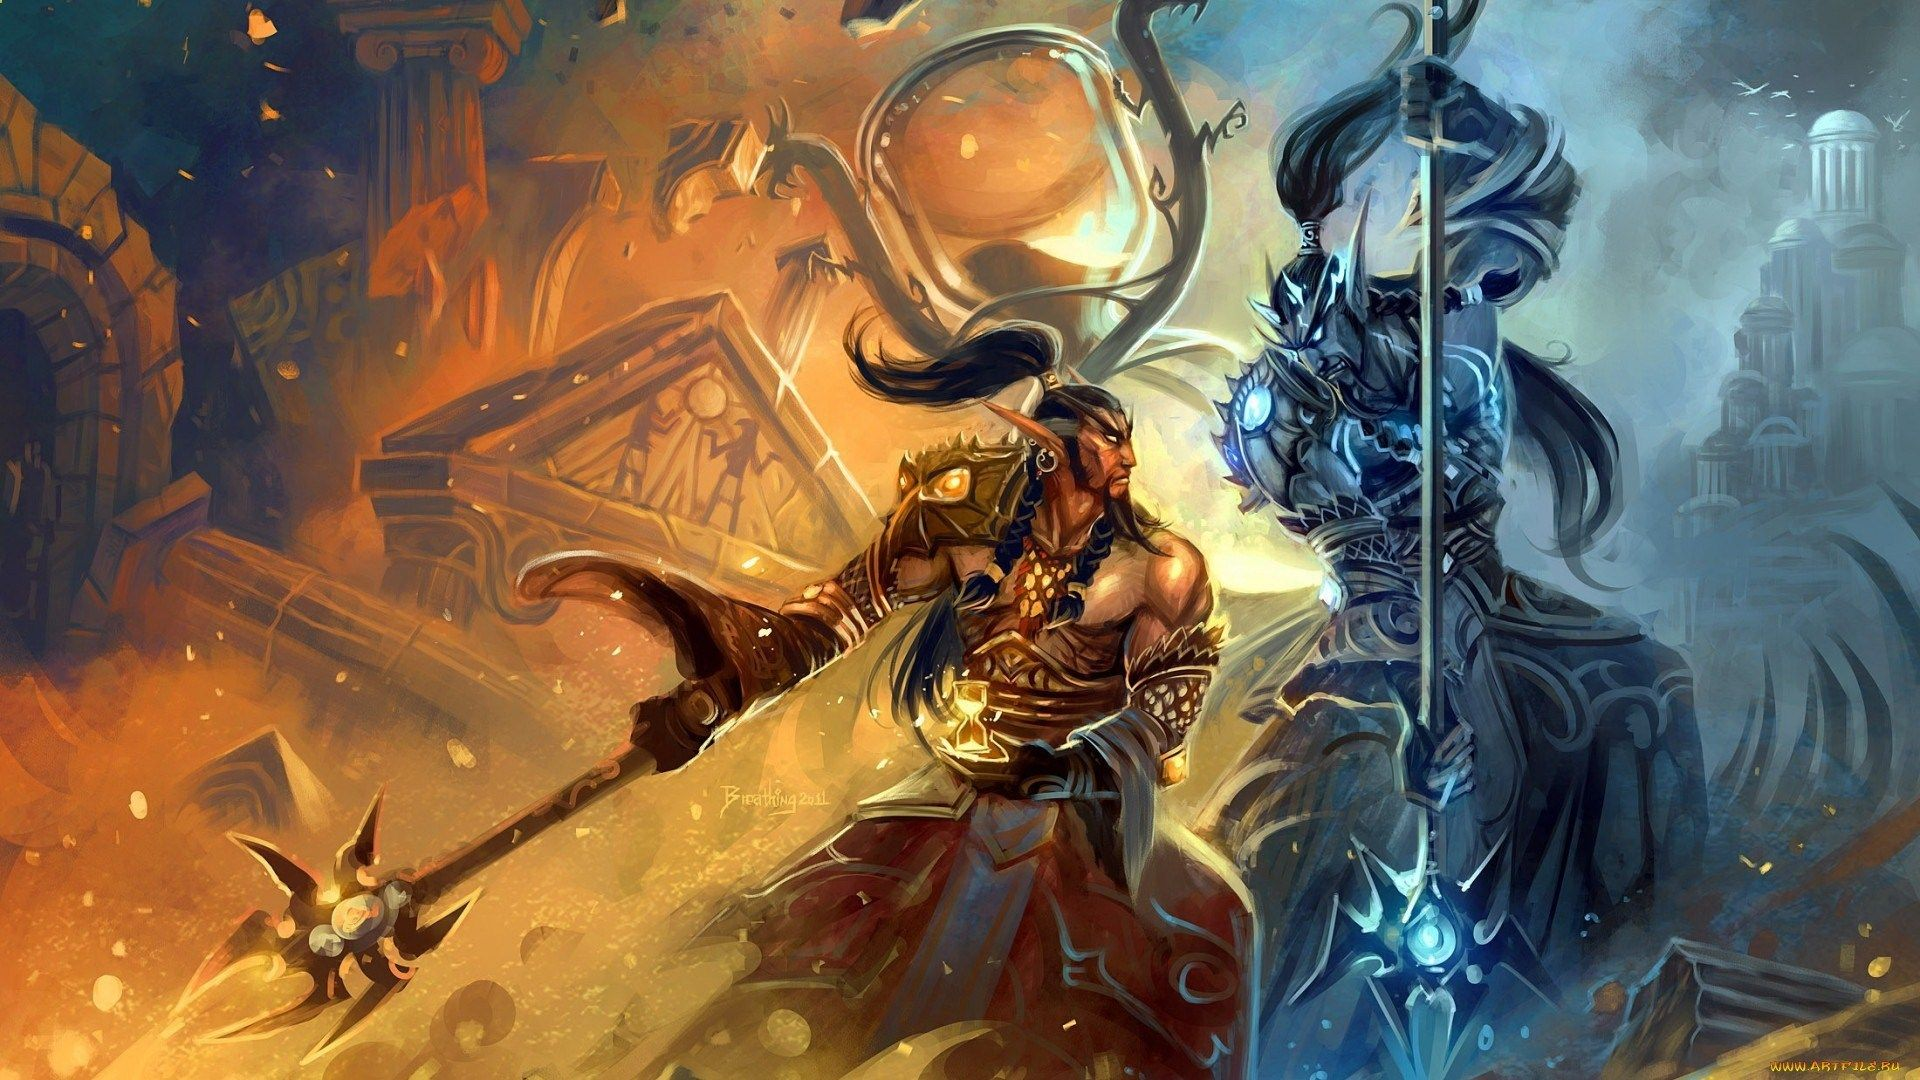 The #1 Best-selling World Of Warcraft, Elder Scrolls Online, & Wildstar Guides For Over 7 Years. http://gameguidez.tumblr.com